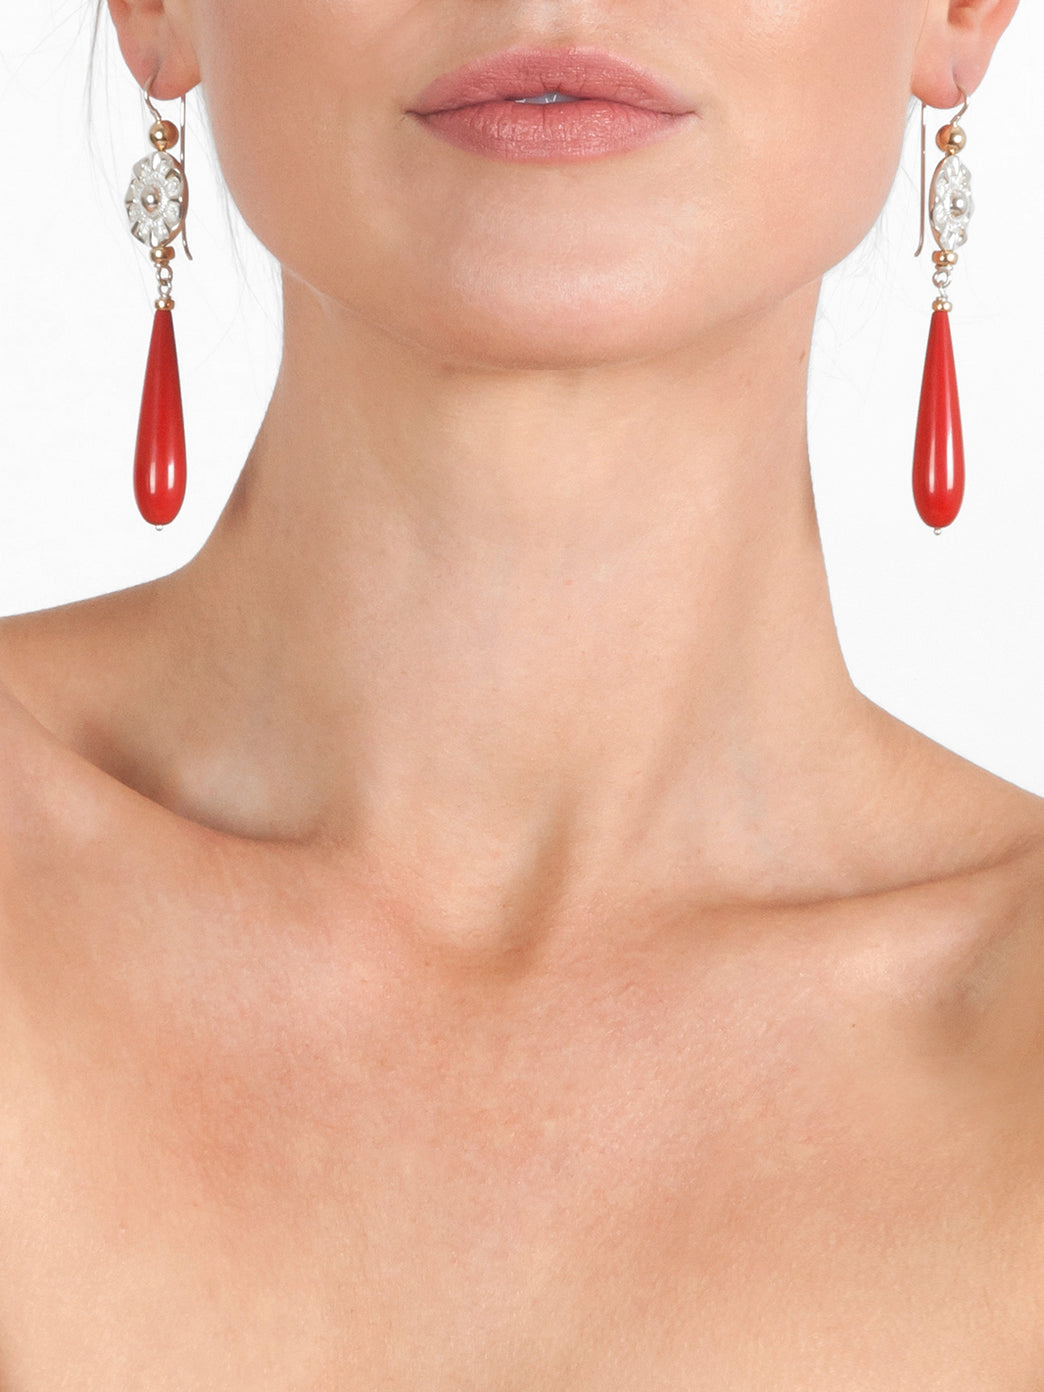 Fiorina Jewellery Elite Vic Disc Drop Earrings Red Coral Model